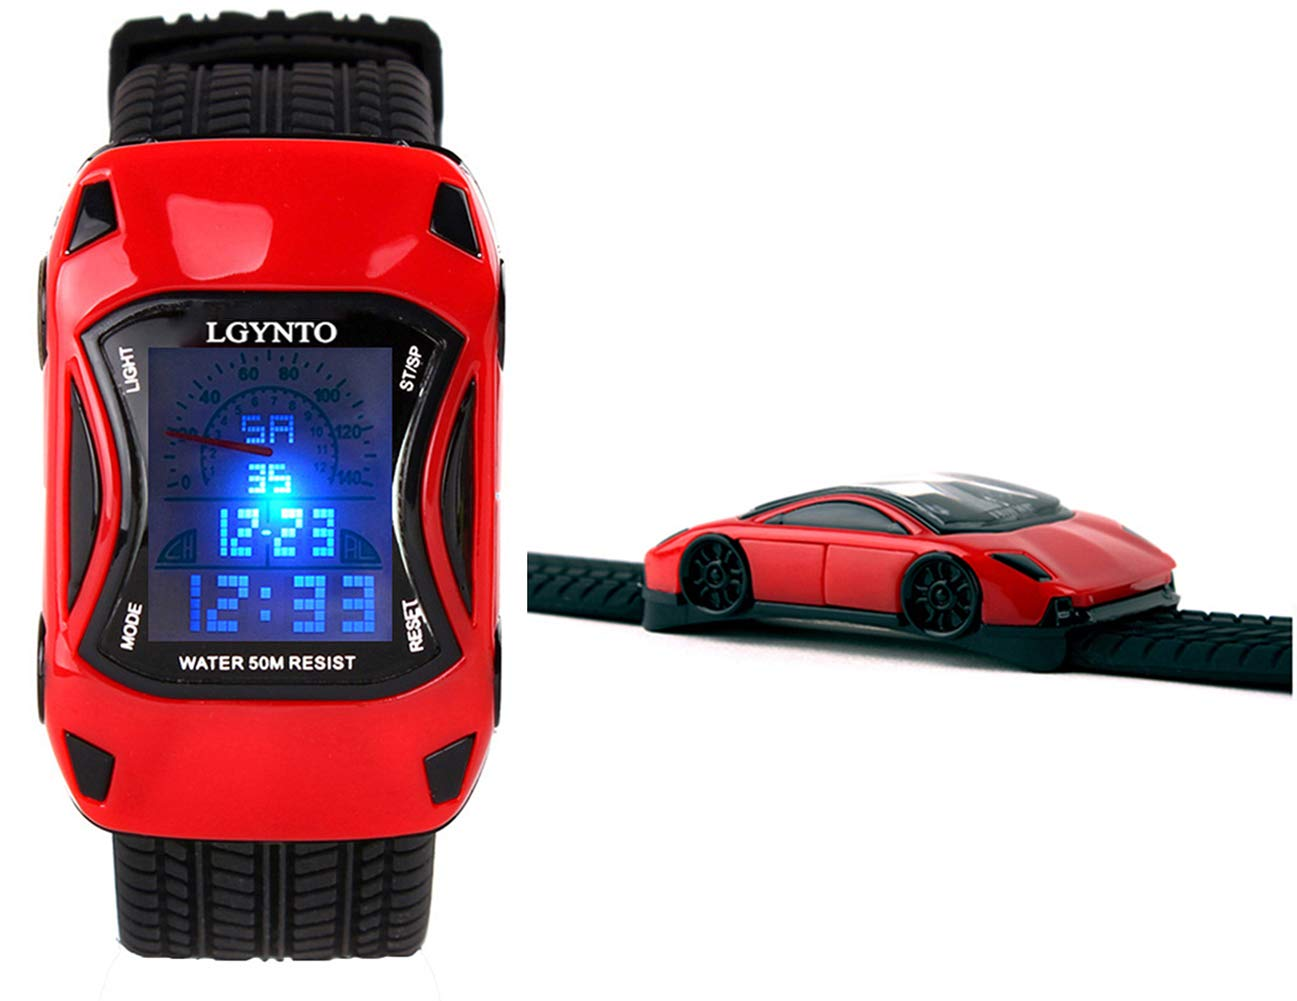 LGYNTO Kids Watches Boys Waterproof Sports Digital LED Wristwatches 7 Colors Flashing Car Shape Wrist Watches for Children,for Age 3-10 (Red) by LGYNTO